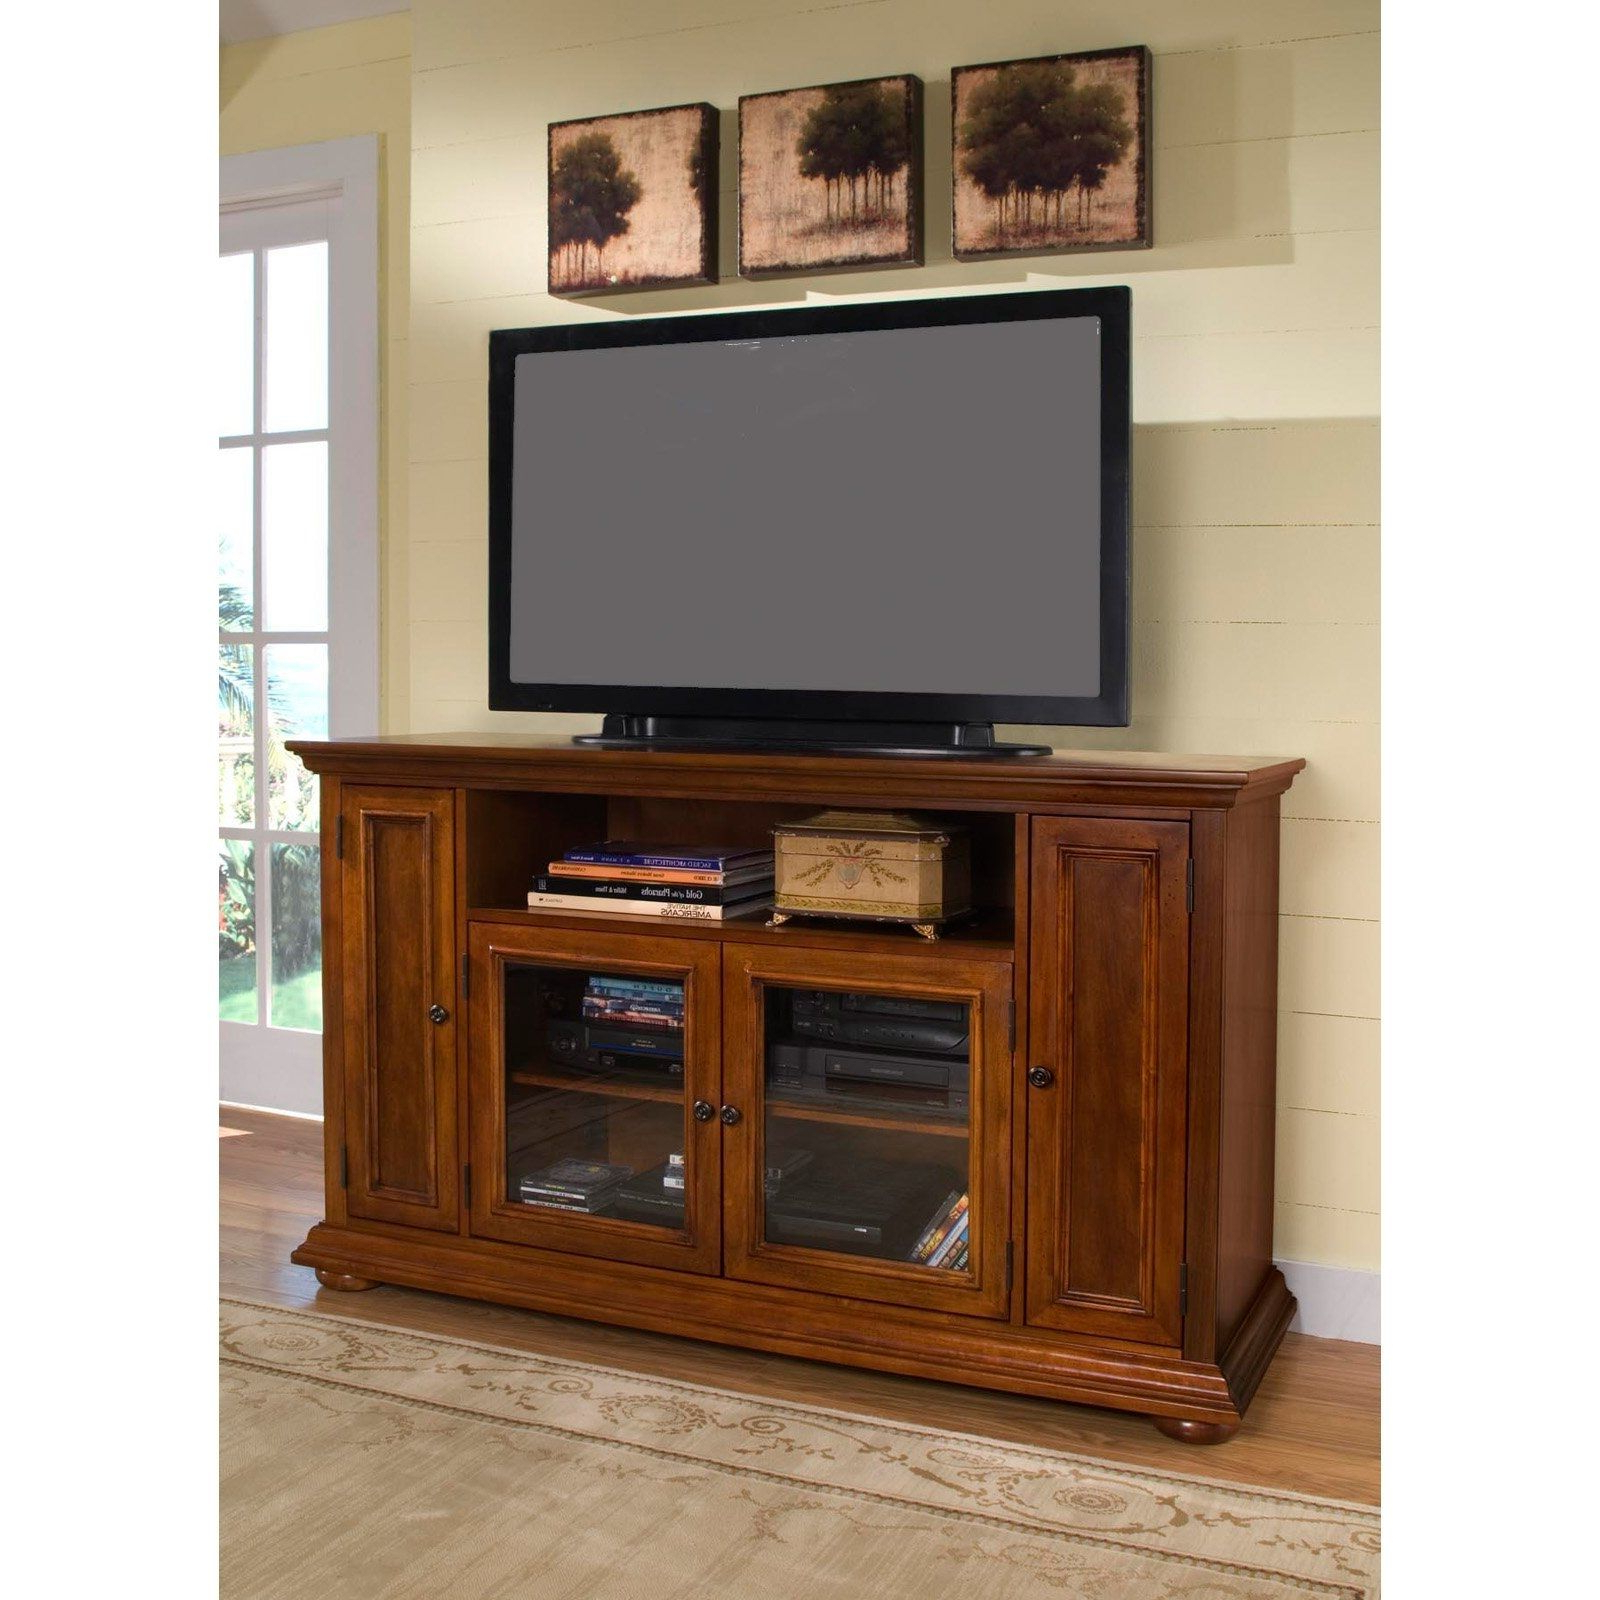 Recent Oak Tv Cabinets For Flat Screens In Corner Oak Tv Cabinets For Flat Screens With Doors (View 4 of 20)